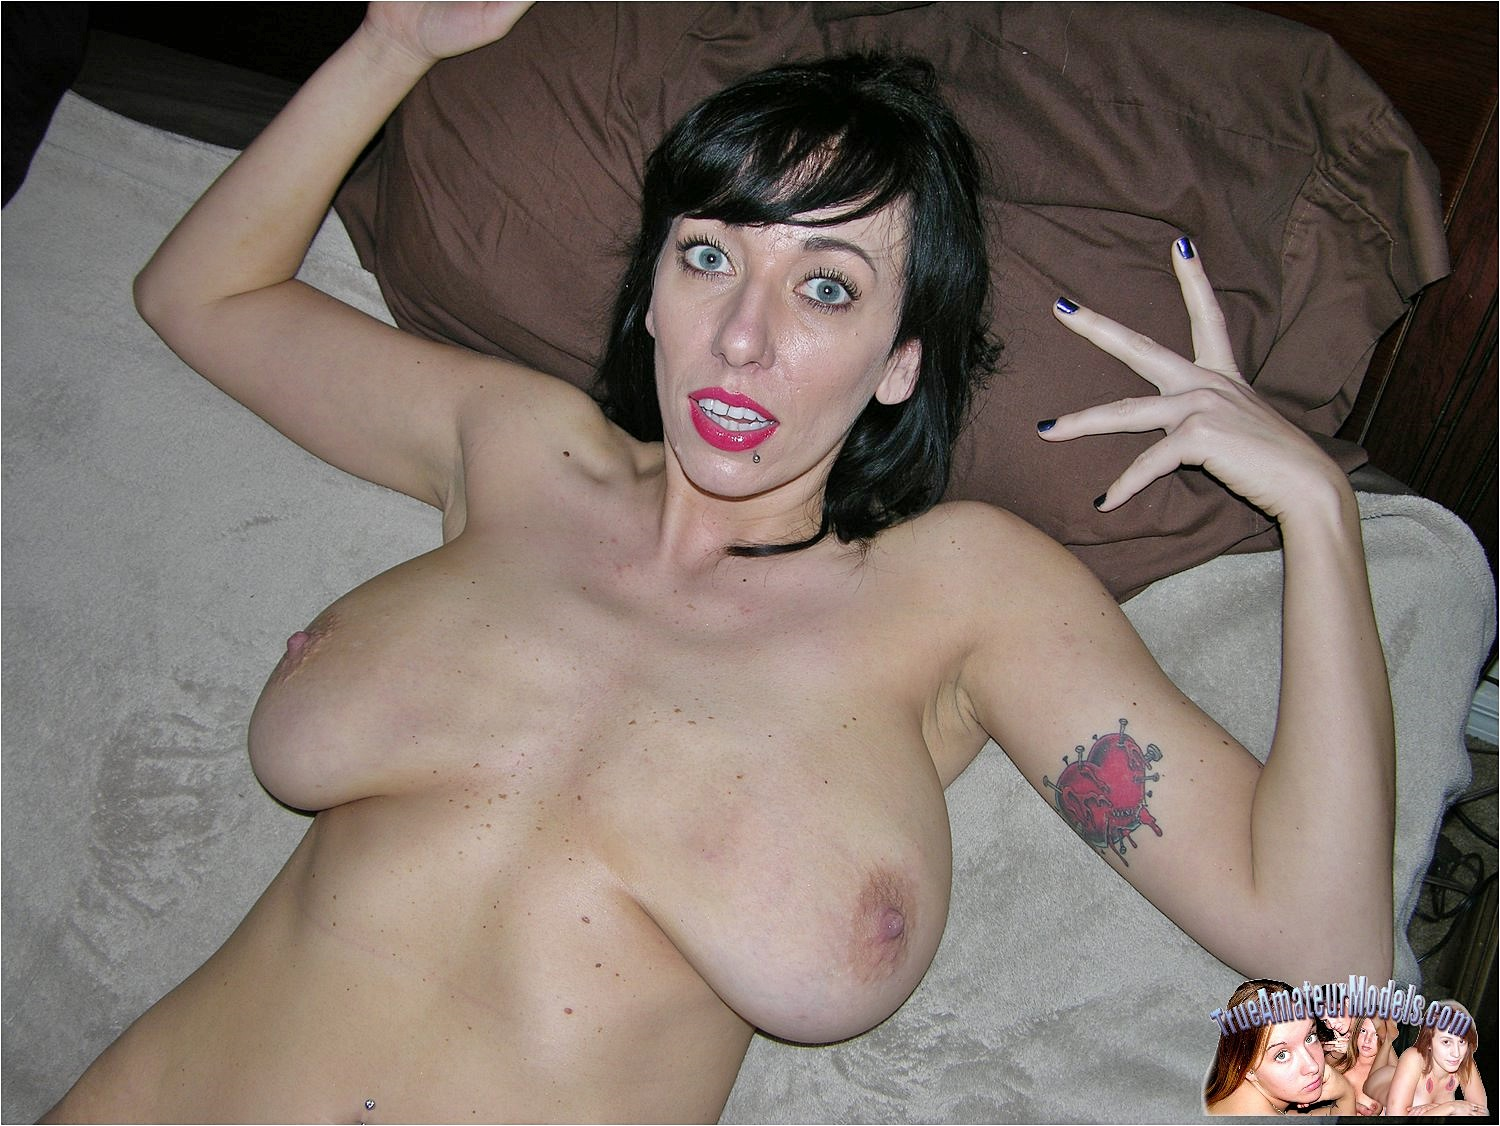 boobs pressing boobs clips online